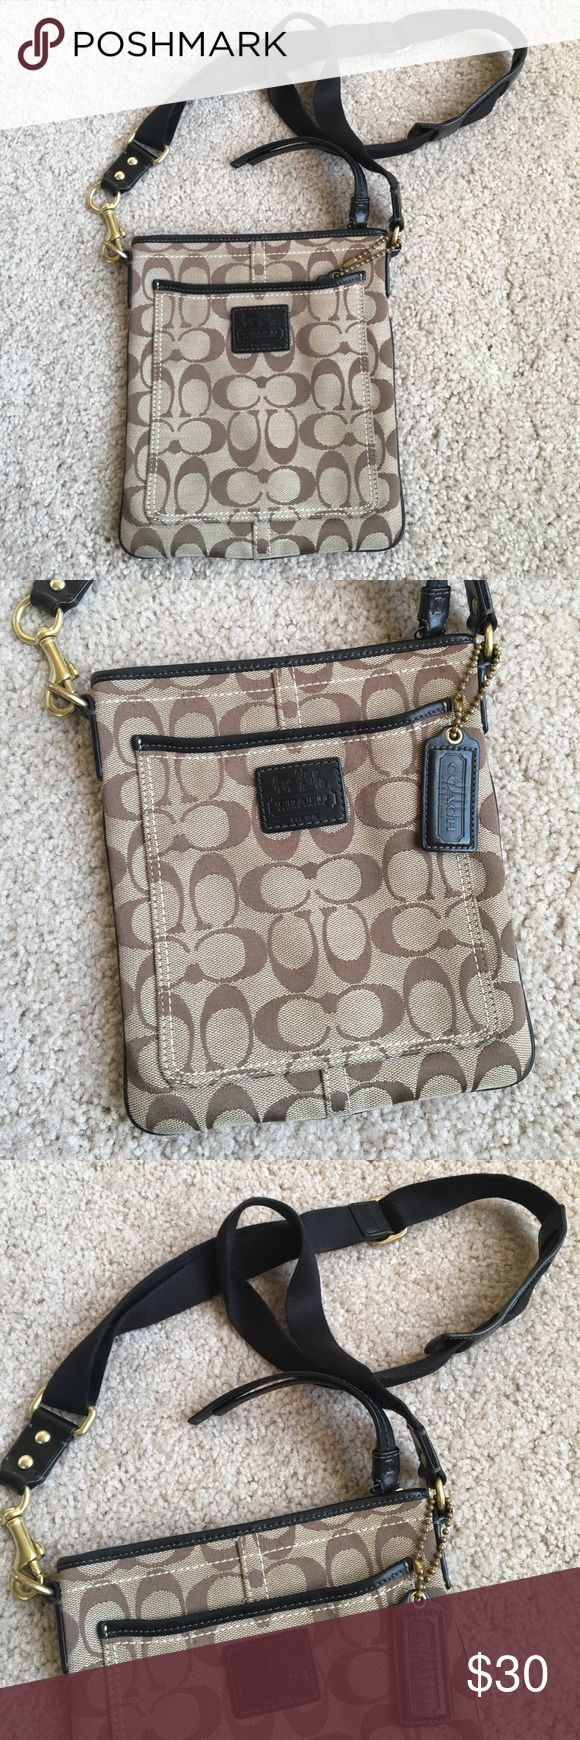 Classic Coach Messenger Bag Classic Coach messenger bag with logo. Very gently used and still in great condition. Perfect to take on the go! Fits everything you need. Coach Bags Crossbody Bags